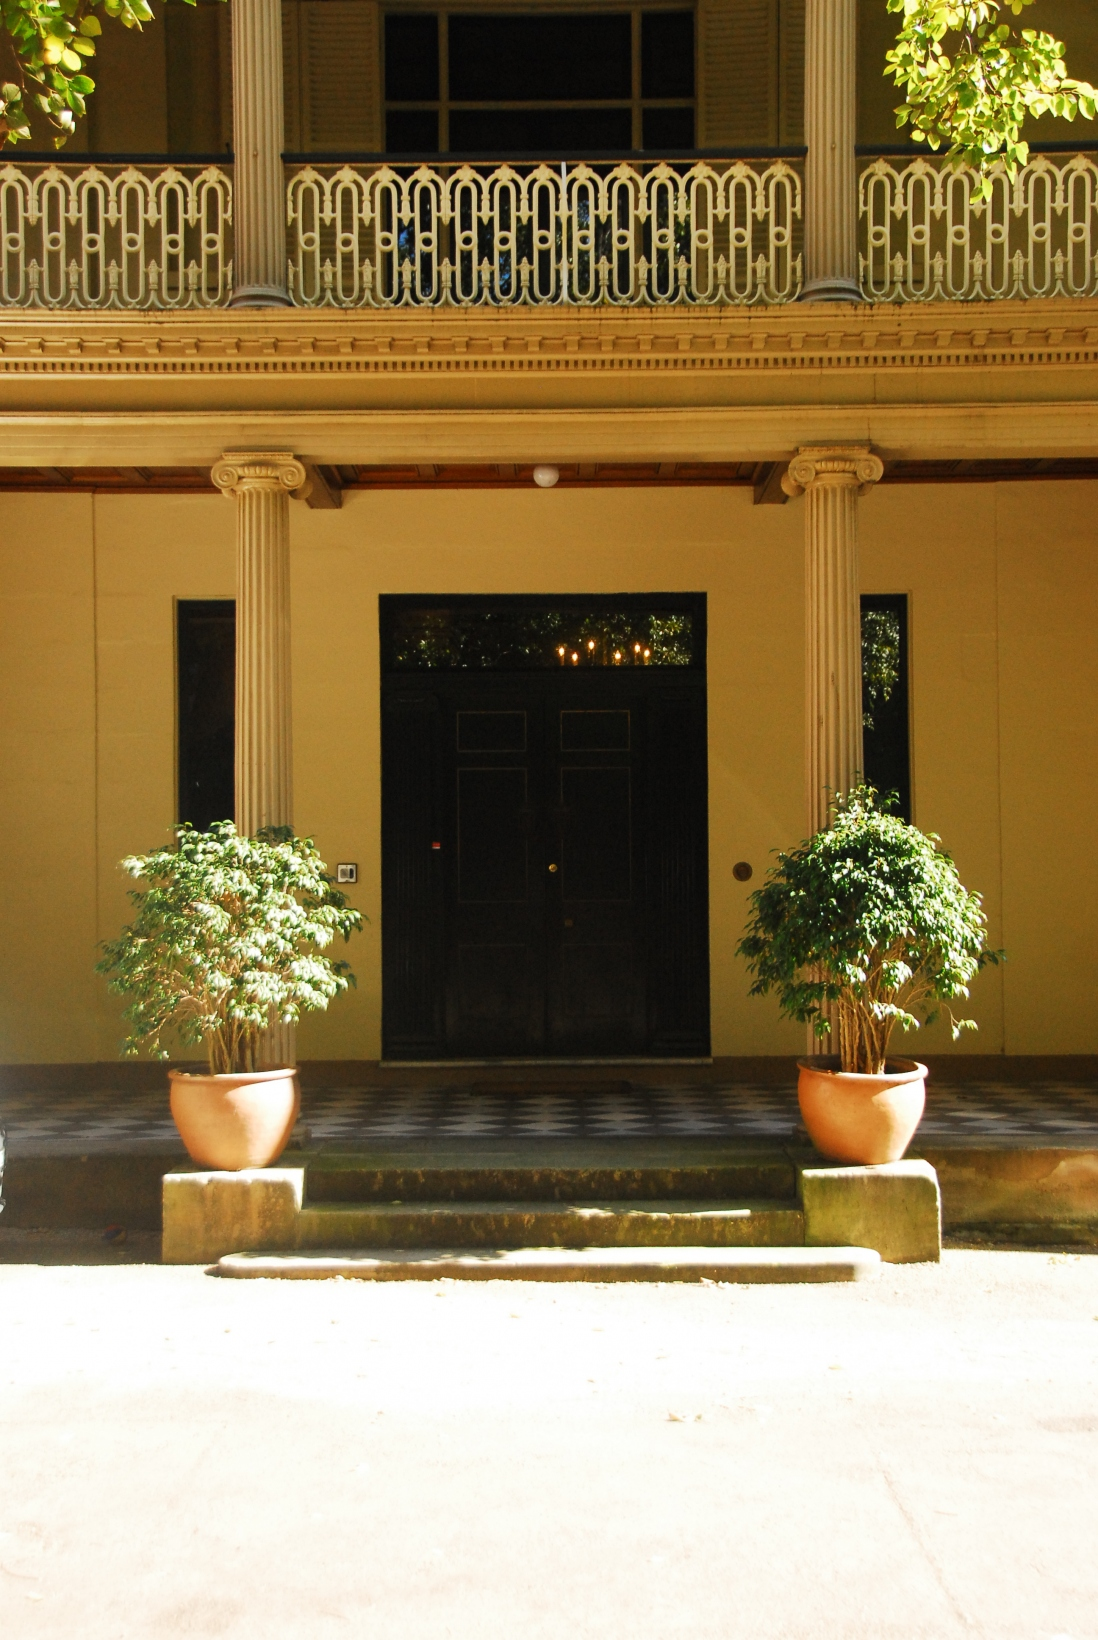 Front entrance to building flanked by columns, with two matching bushes in pots in front.